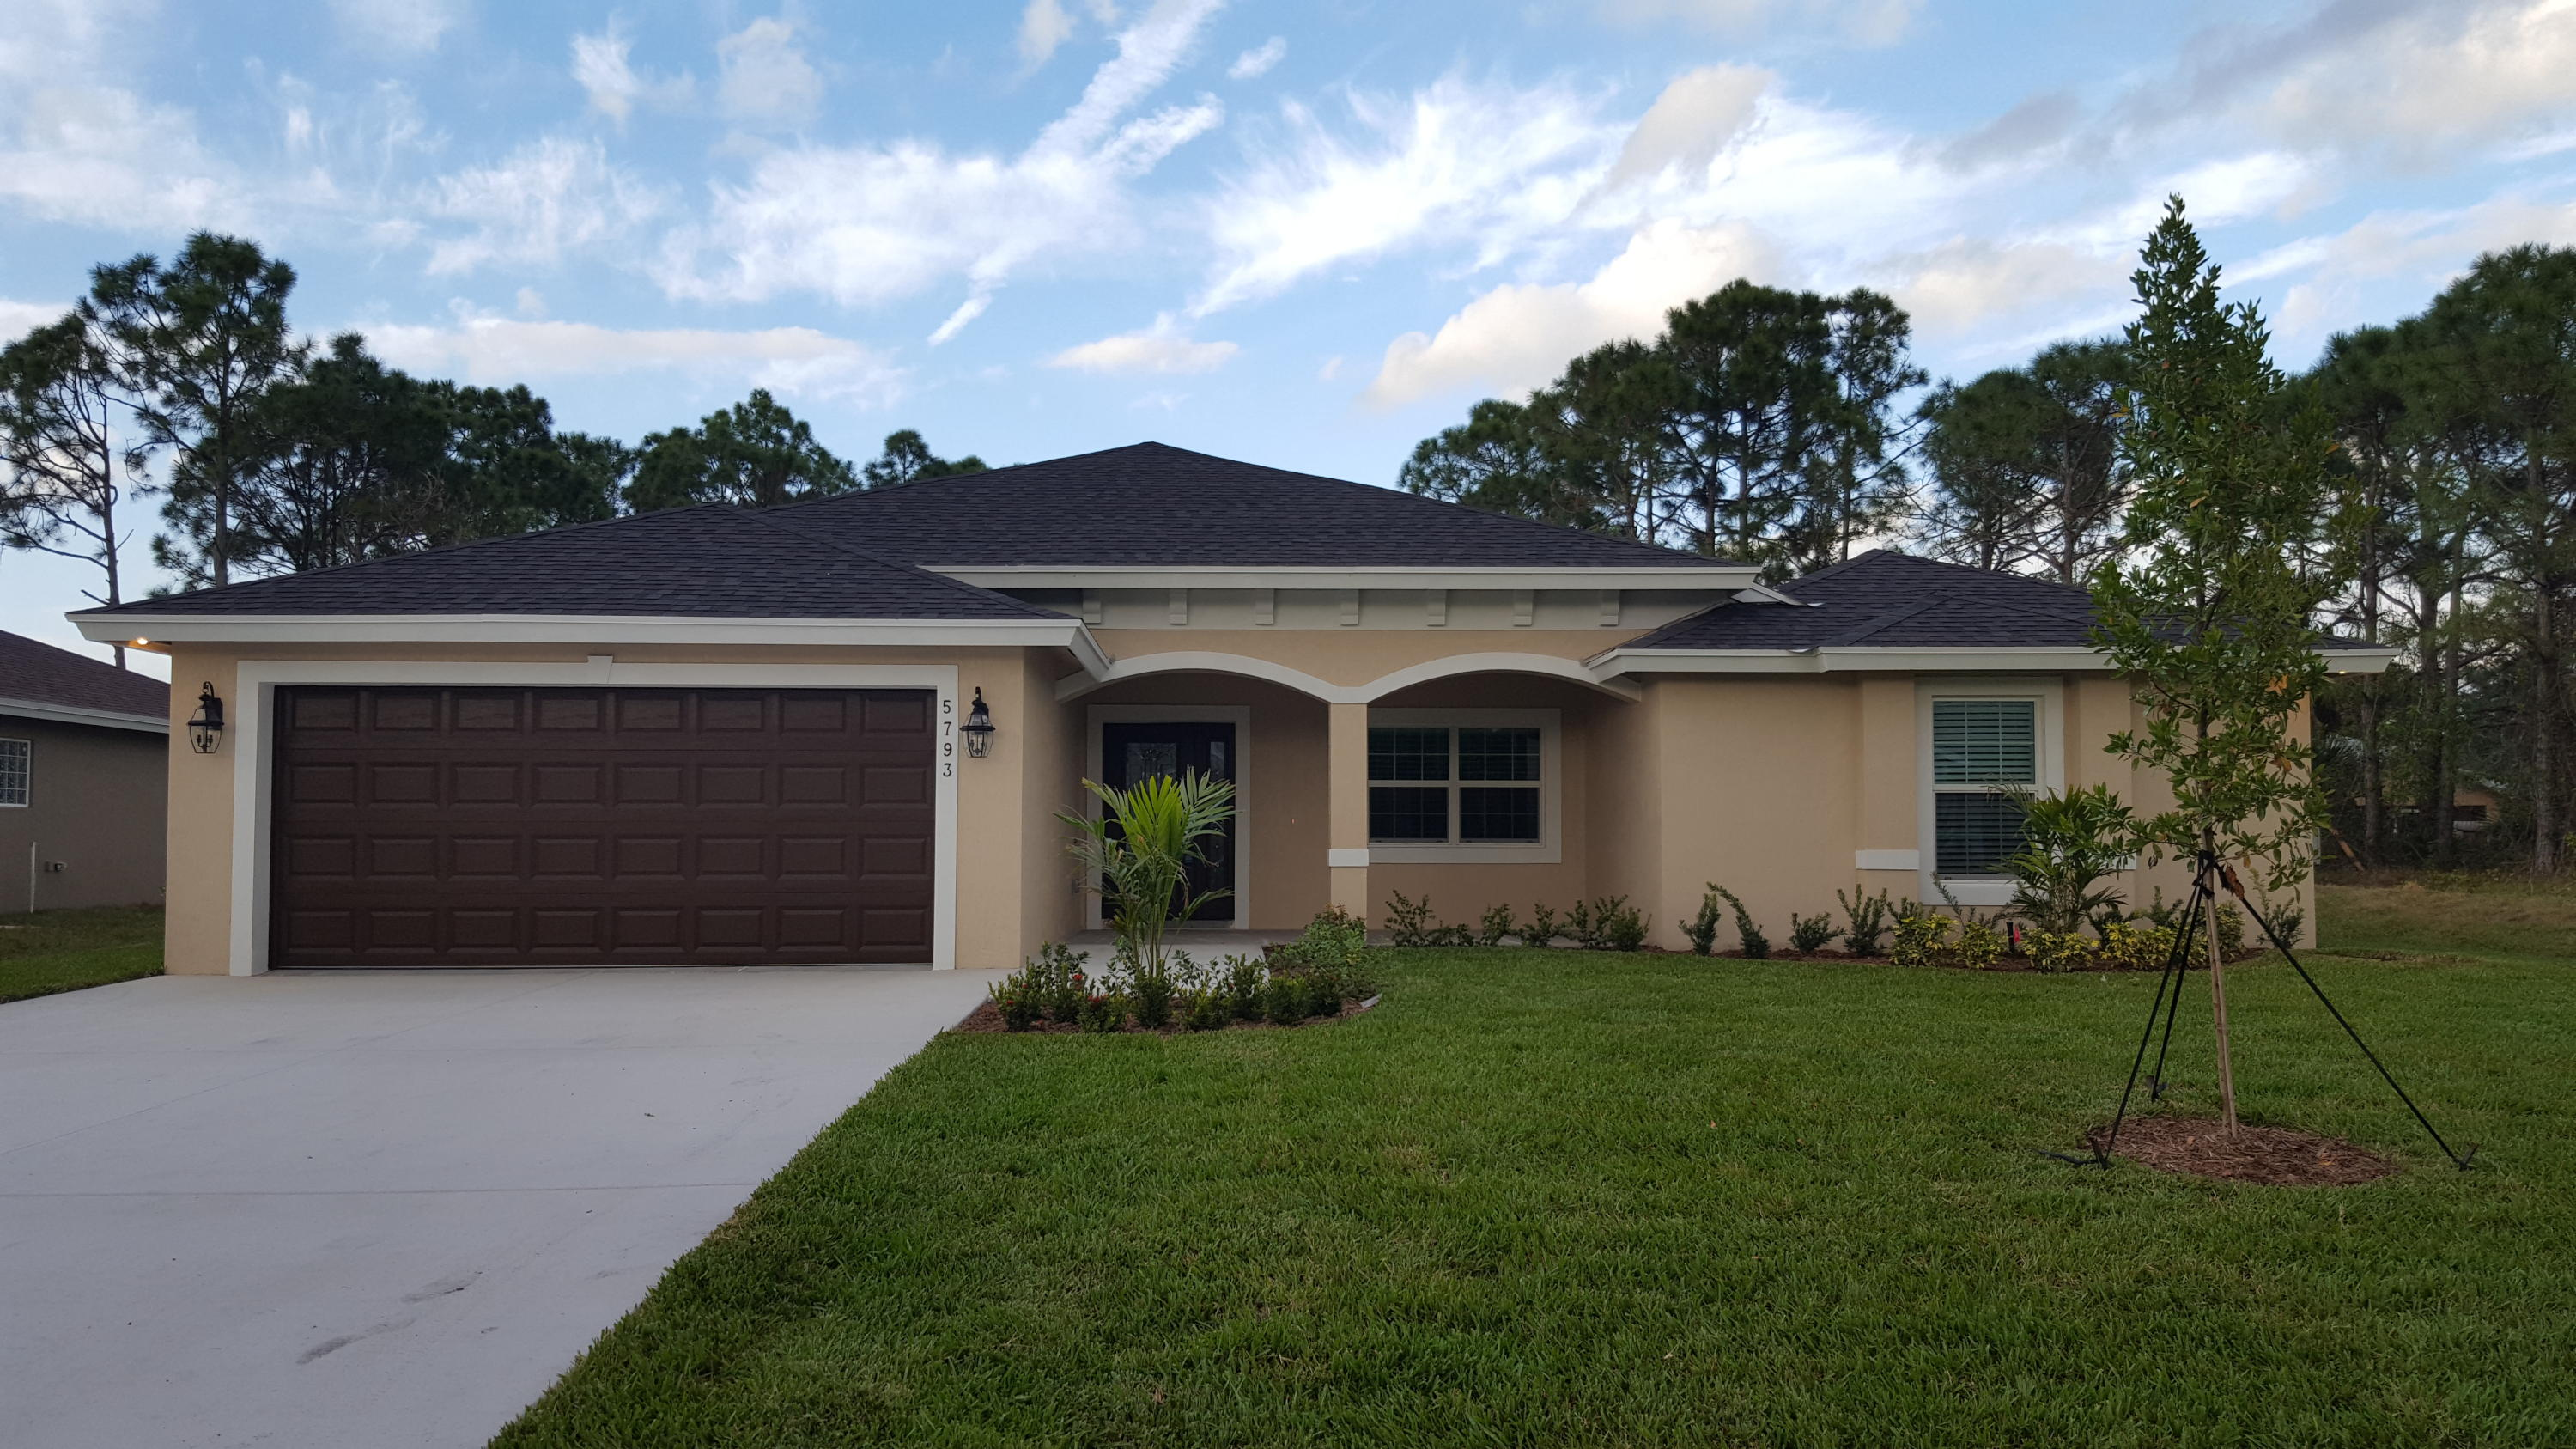 5793 NW Esau Avenue 34986 - One of Port Saint Lucie Homes for Sale